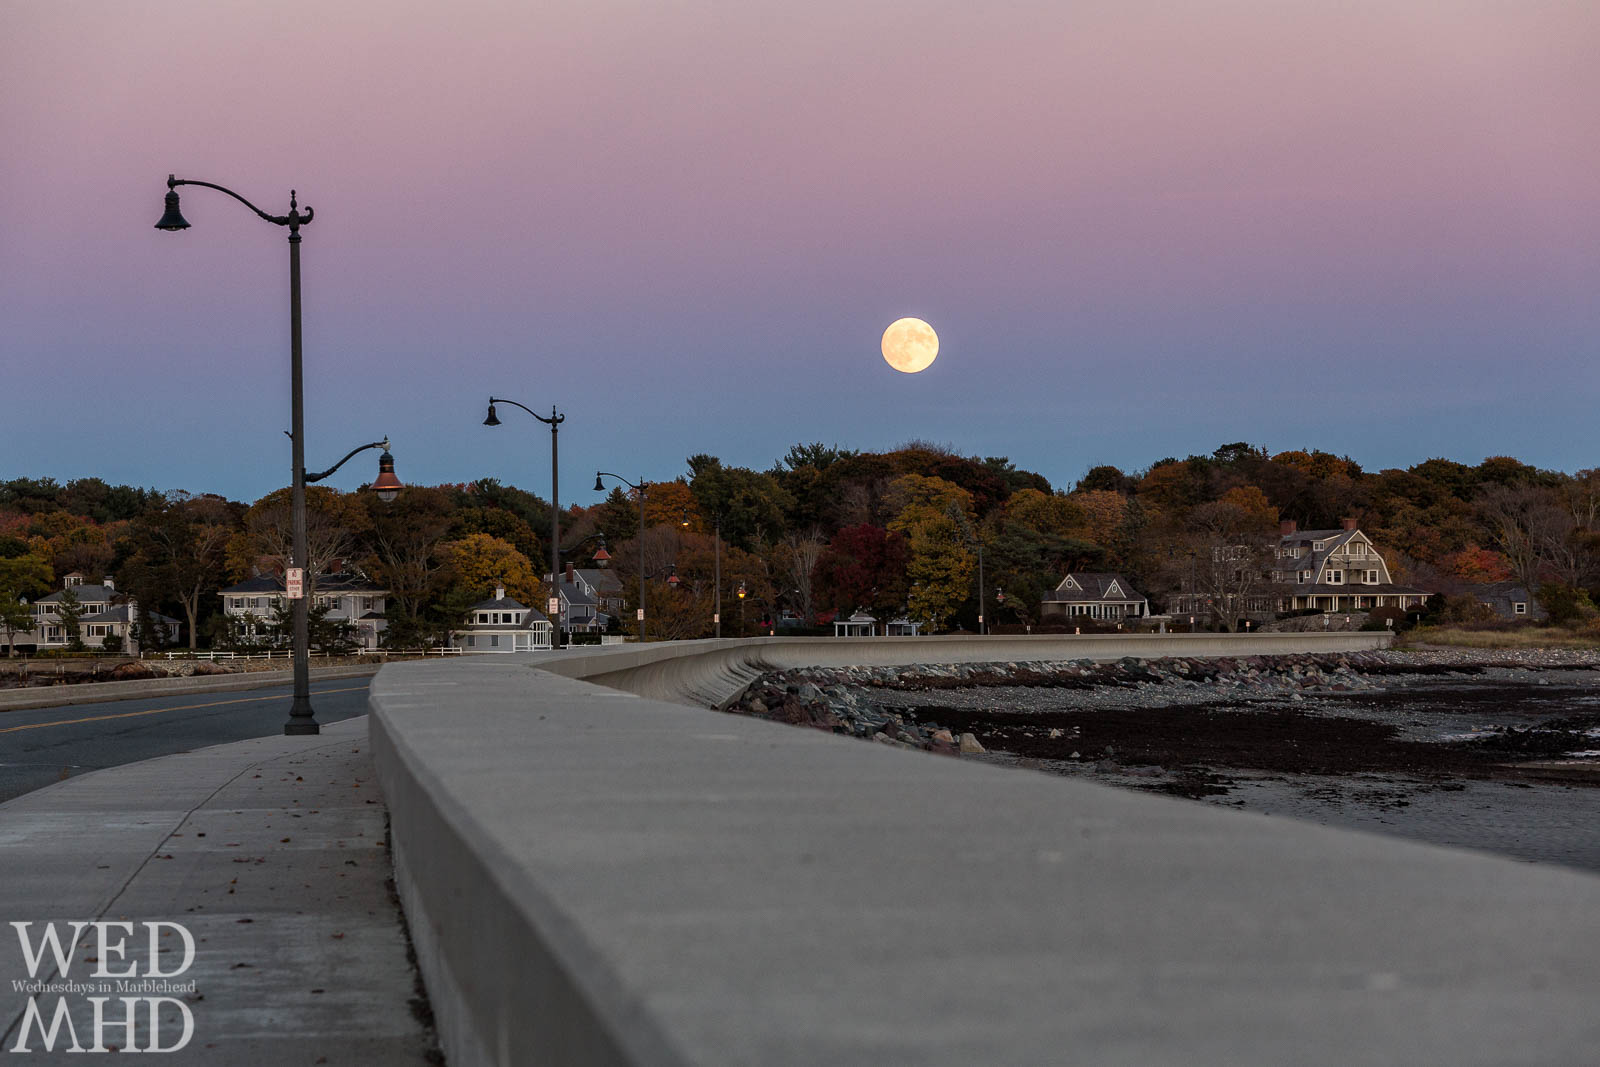 An image of the moonrise over the causeway with Fall colors visible along Marblehead Neck